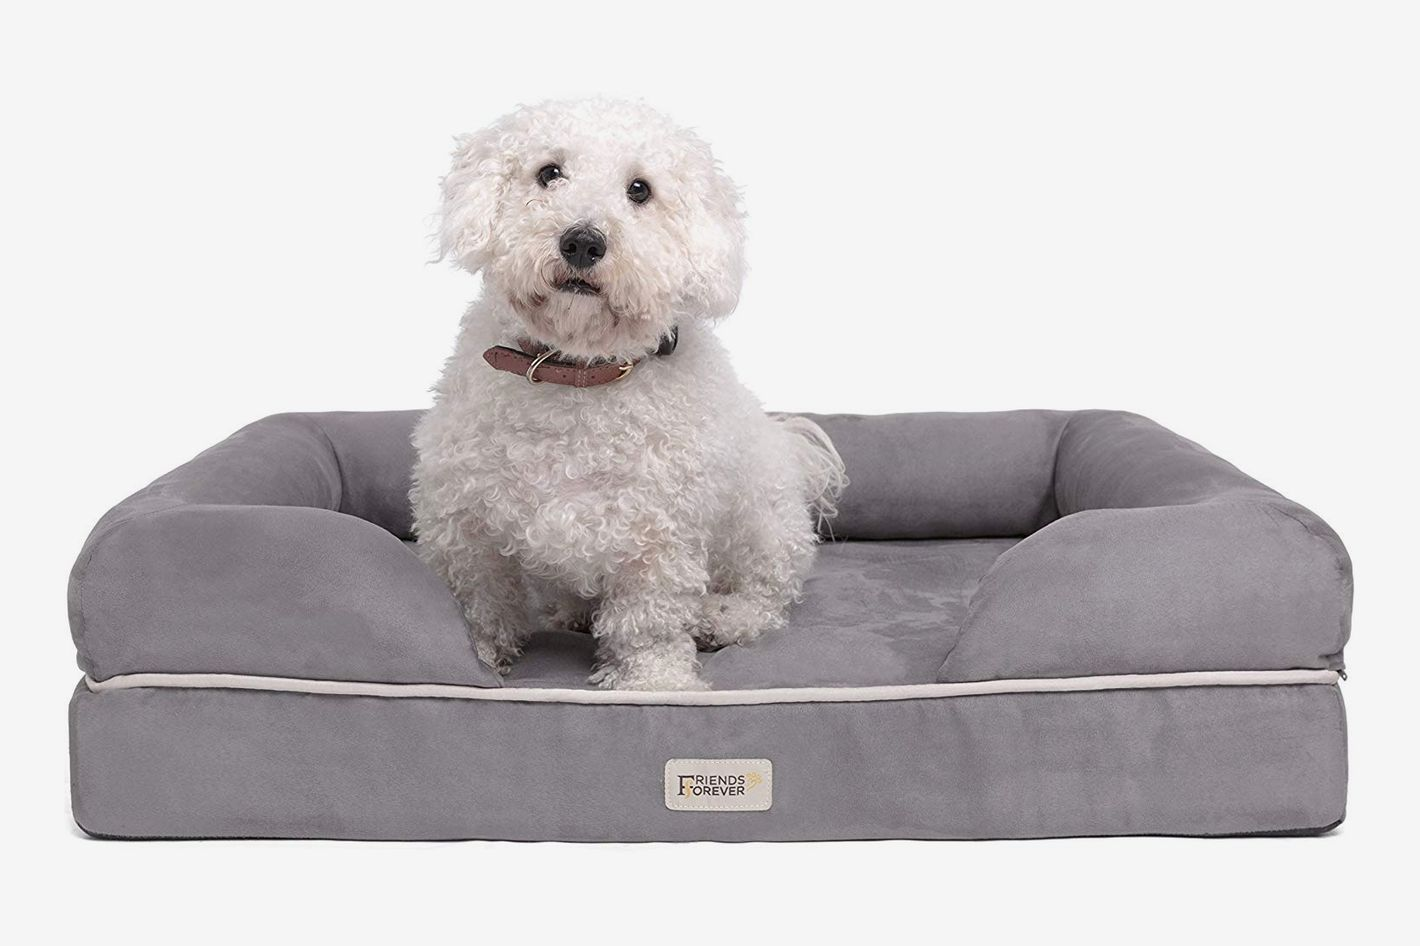 f12c4188cc68 15 Best Dog Beds 2019: Foam, Suede, Shag, Cooling